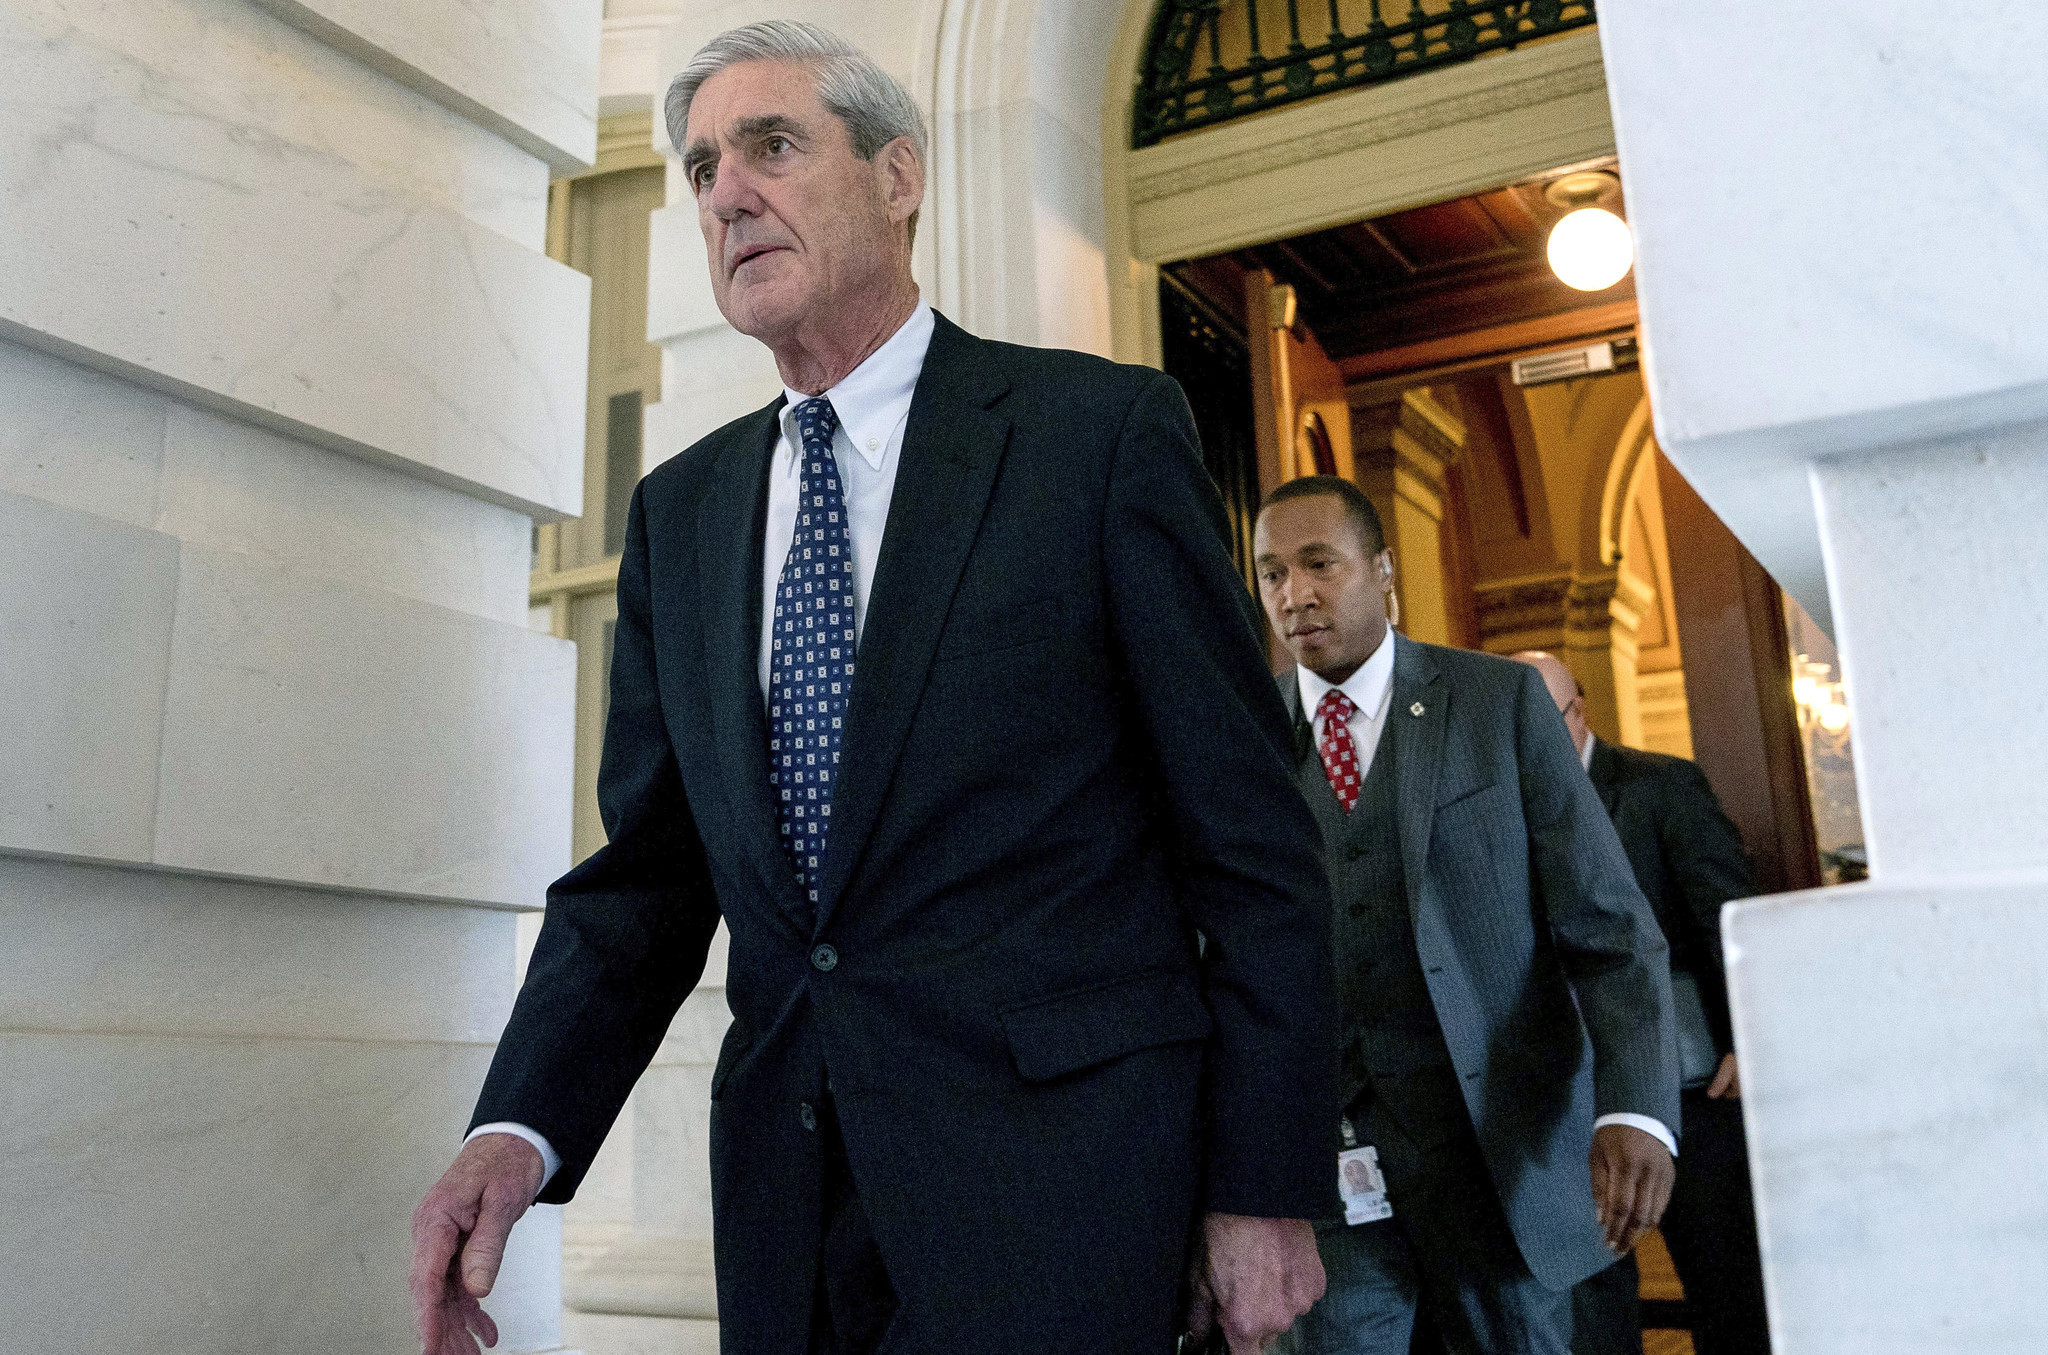 As Mueller moves to finalize obstruction report, Trump's allies ready for political battle